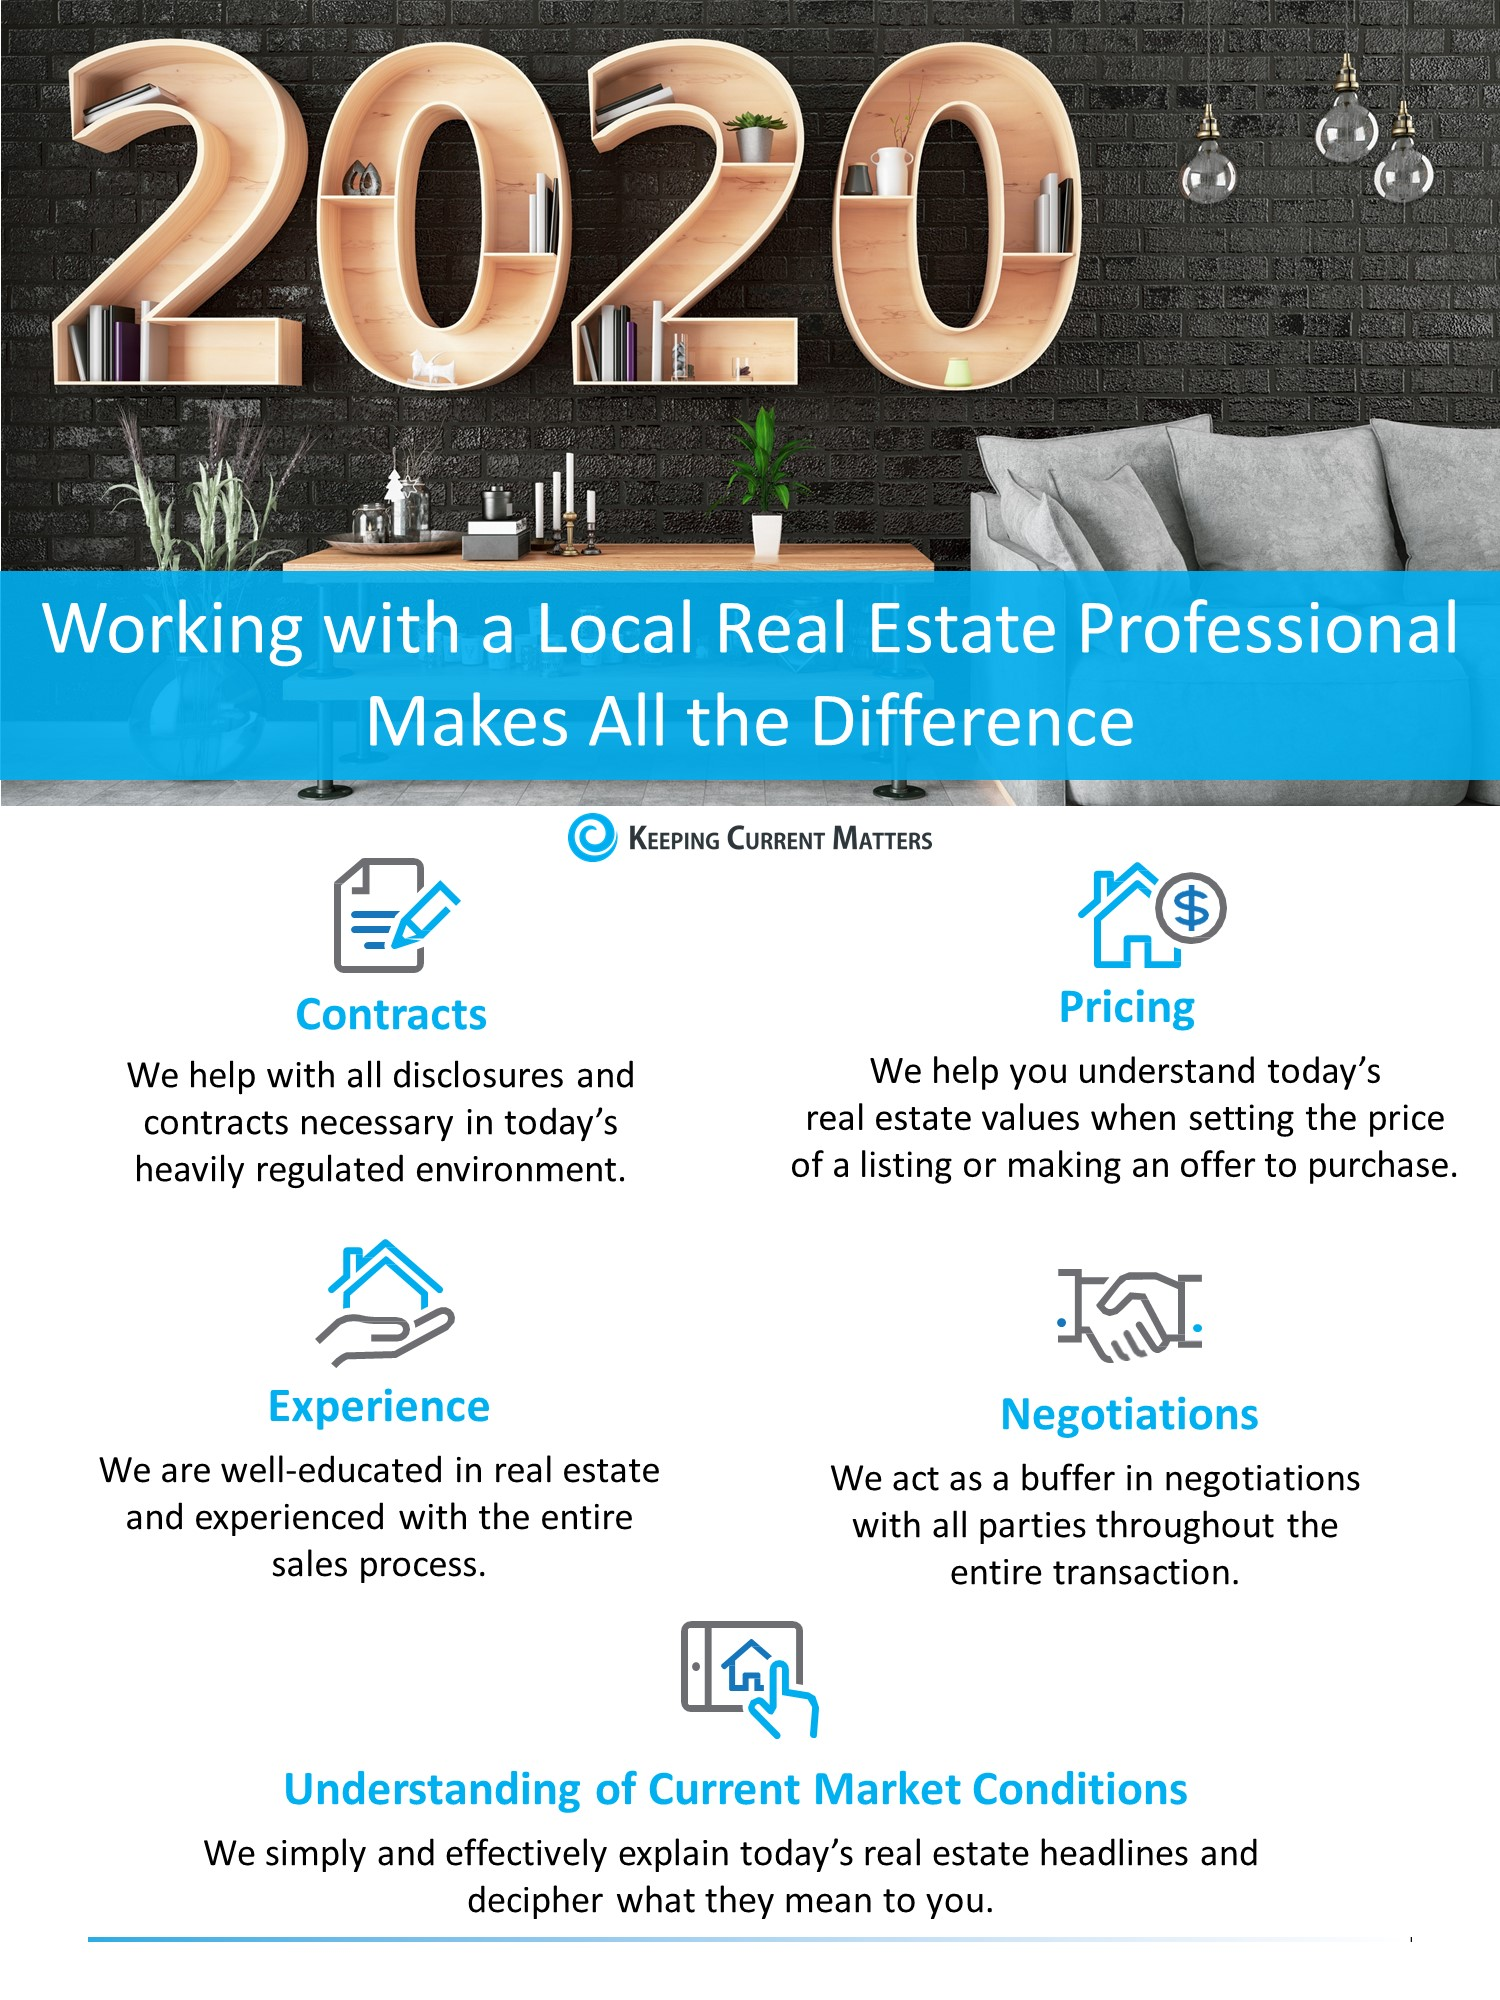 Working with a Local Real Estate Professional Makes All the Difference [INFOGRAPHIC] | Keeping Current Matters